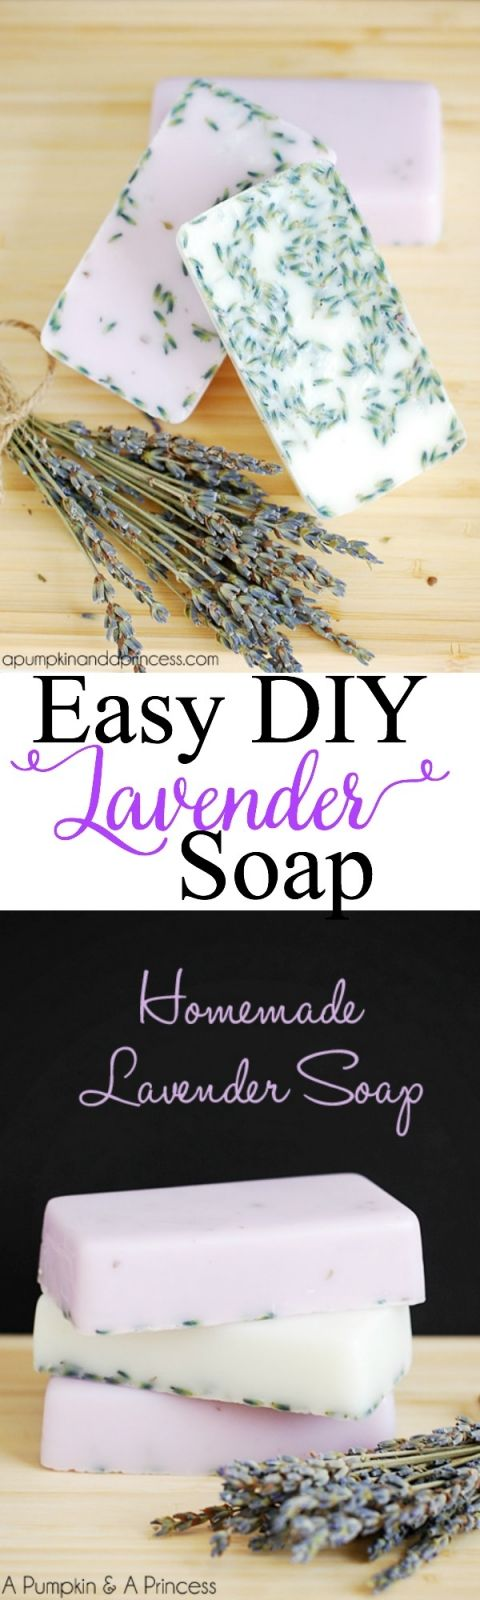 DIY Lavender Soap Tutorial - how to make lavender soap in a few simple steps. This makes a great handmade gift under $5!